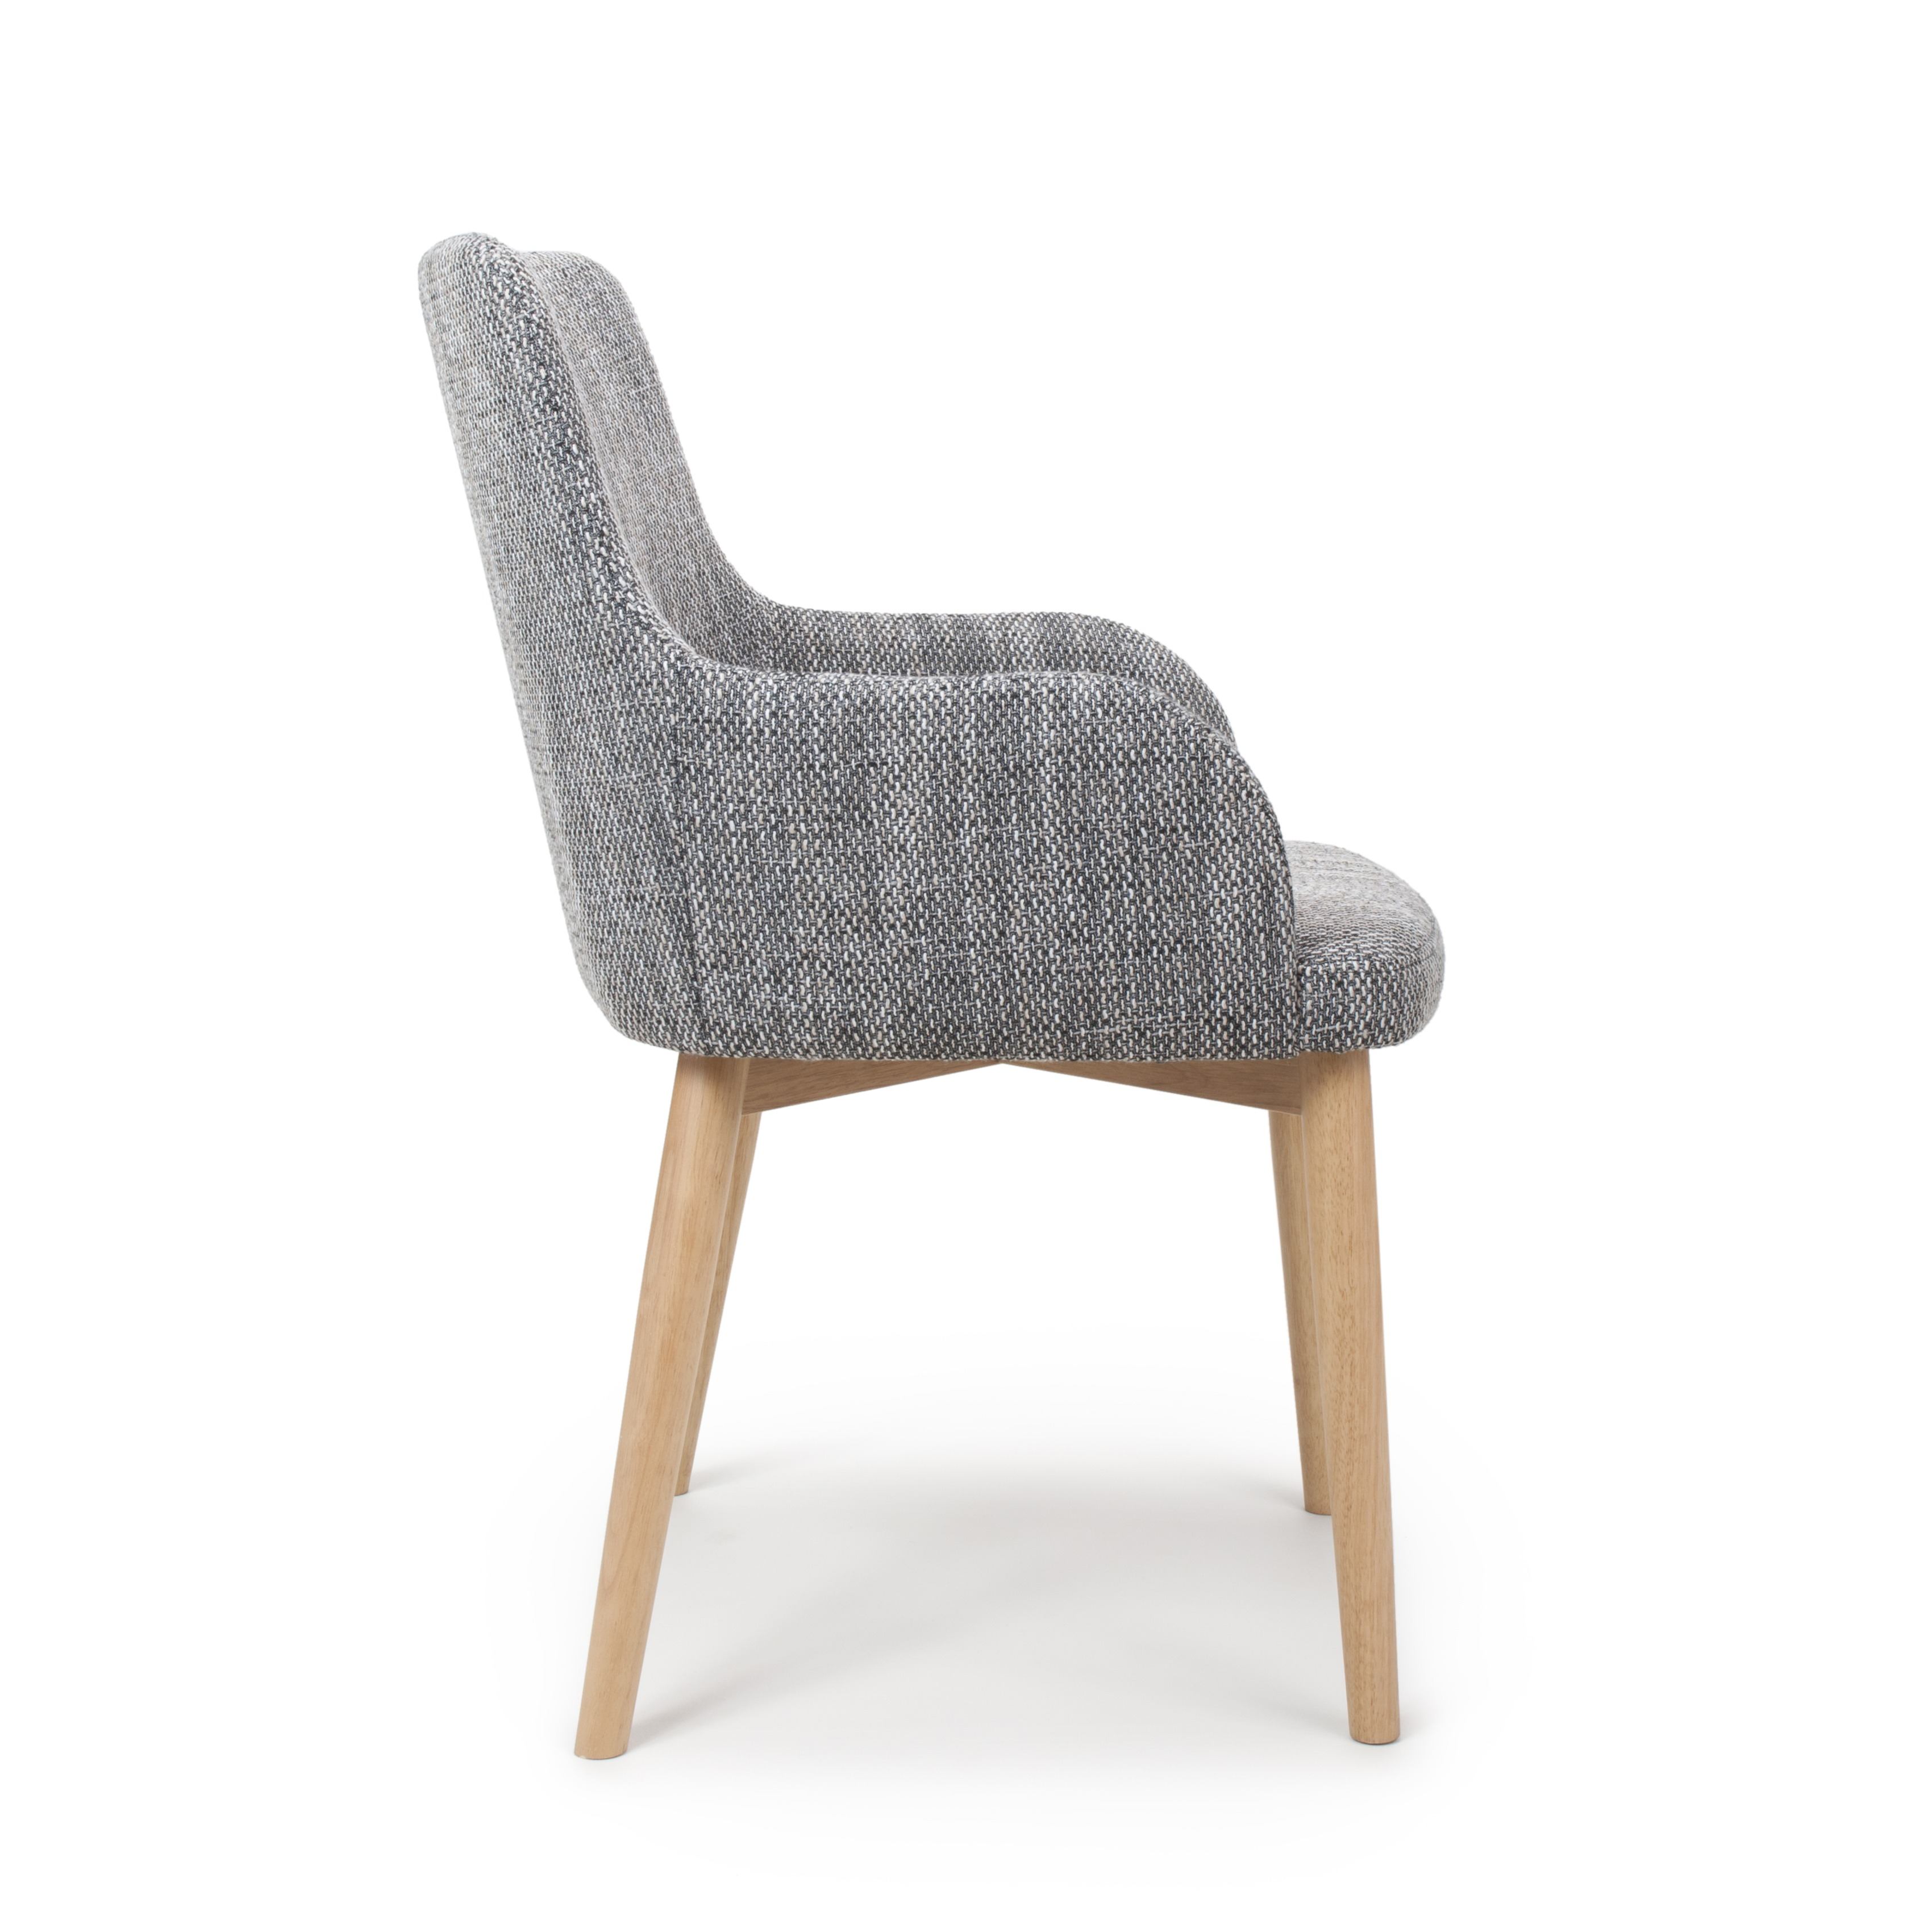 Sidcup Grey Tweed Fabric Modern Dining Chairs